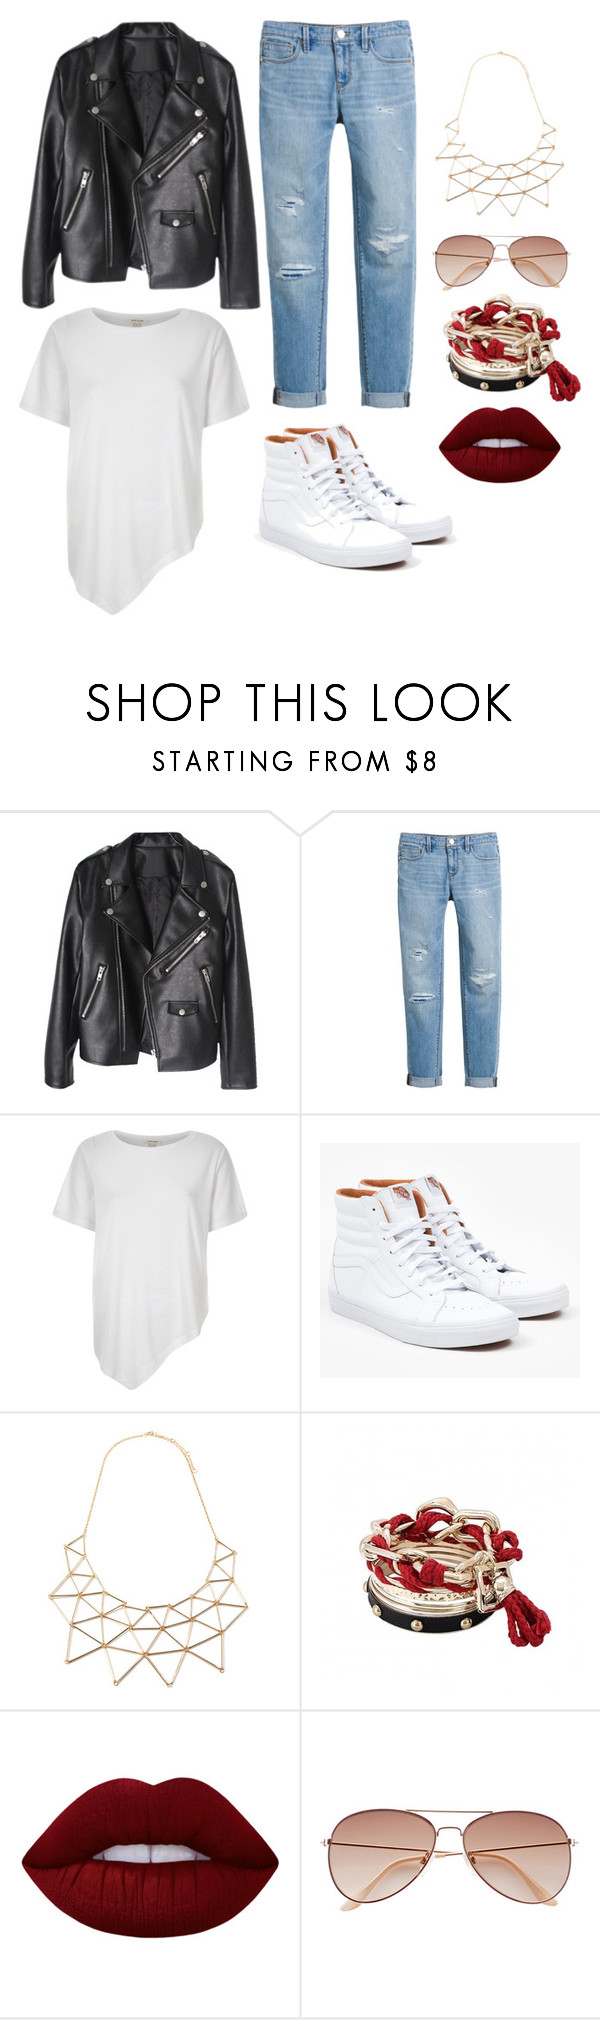 """""""Red Rebel"""" by kirsten-hall on Polyvore featuring White House Black Market, River Island, Vans, Forever 21, Lime Crime and H&M"""